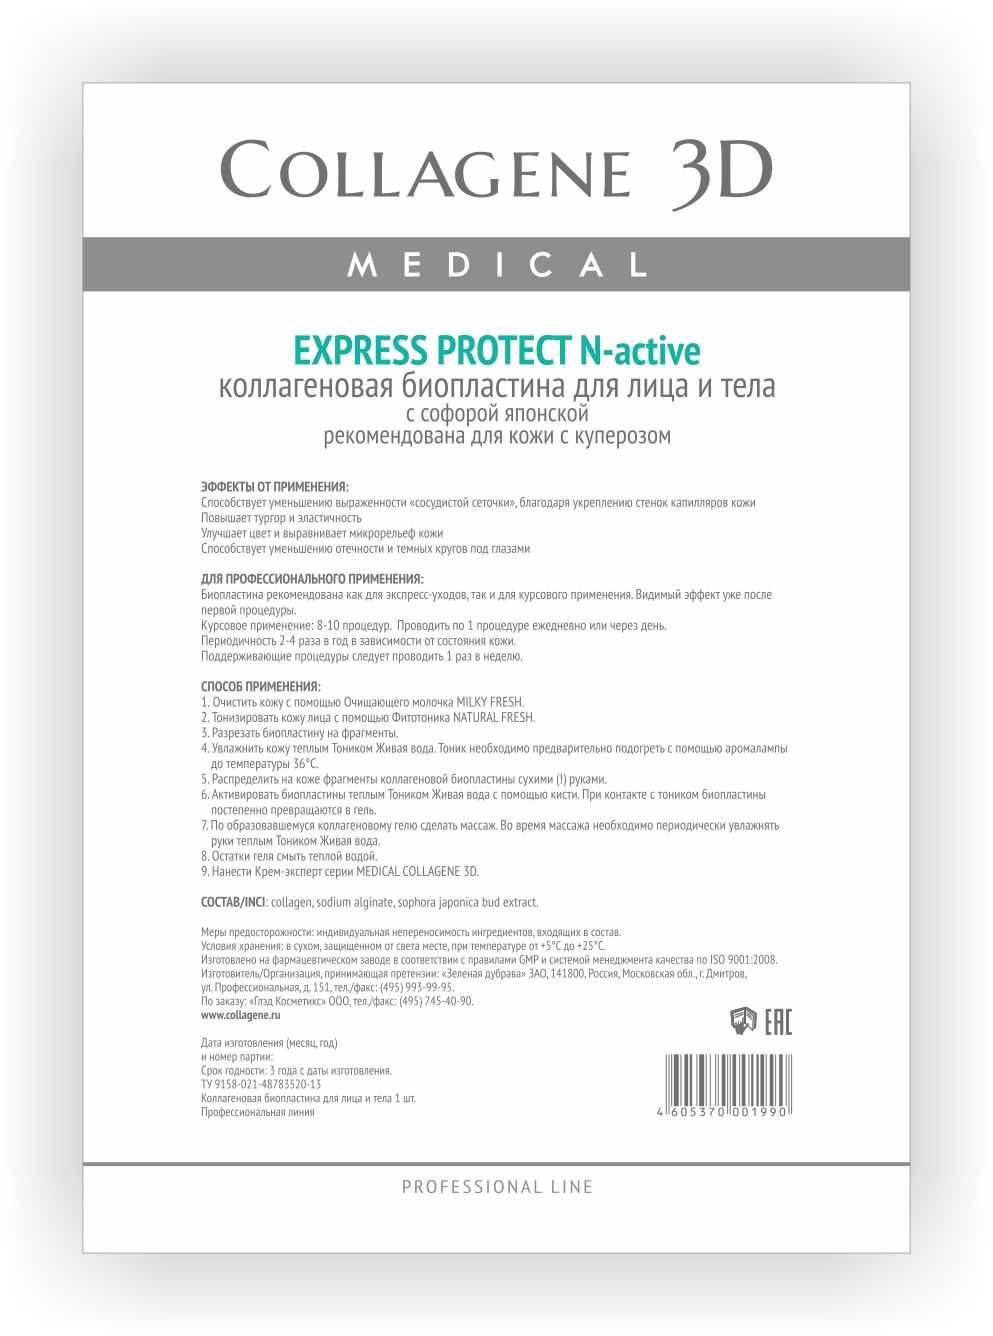 "MEDICAL COLLAGENE 3D Биопластины коллагеновые с софорой японской для лица и тела ""Express Protect"" А4"